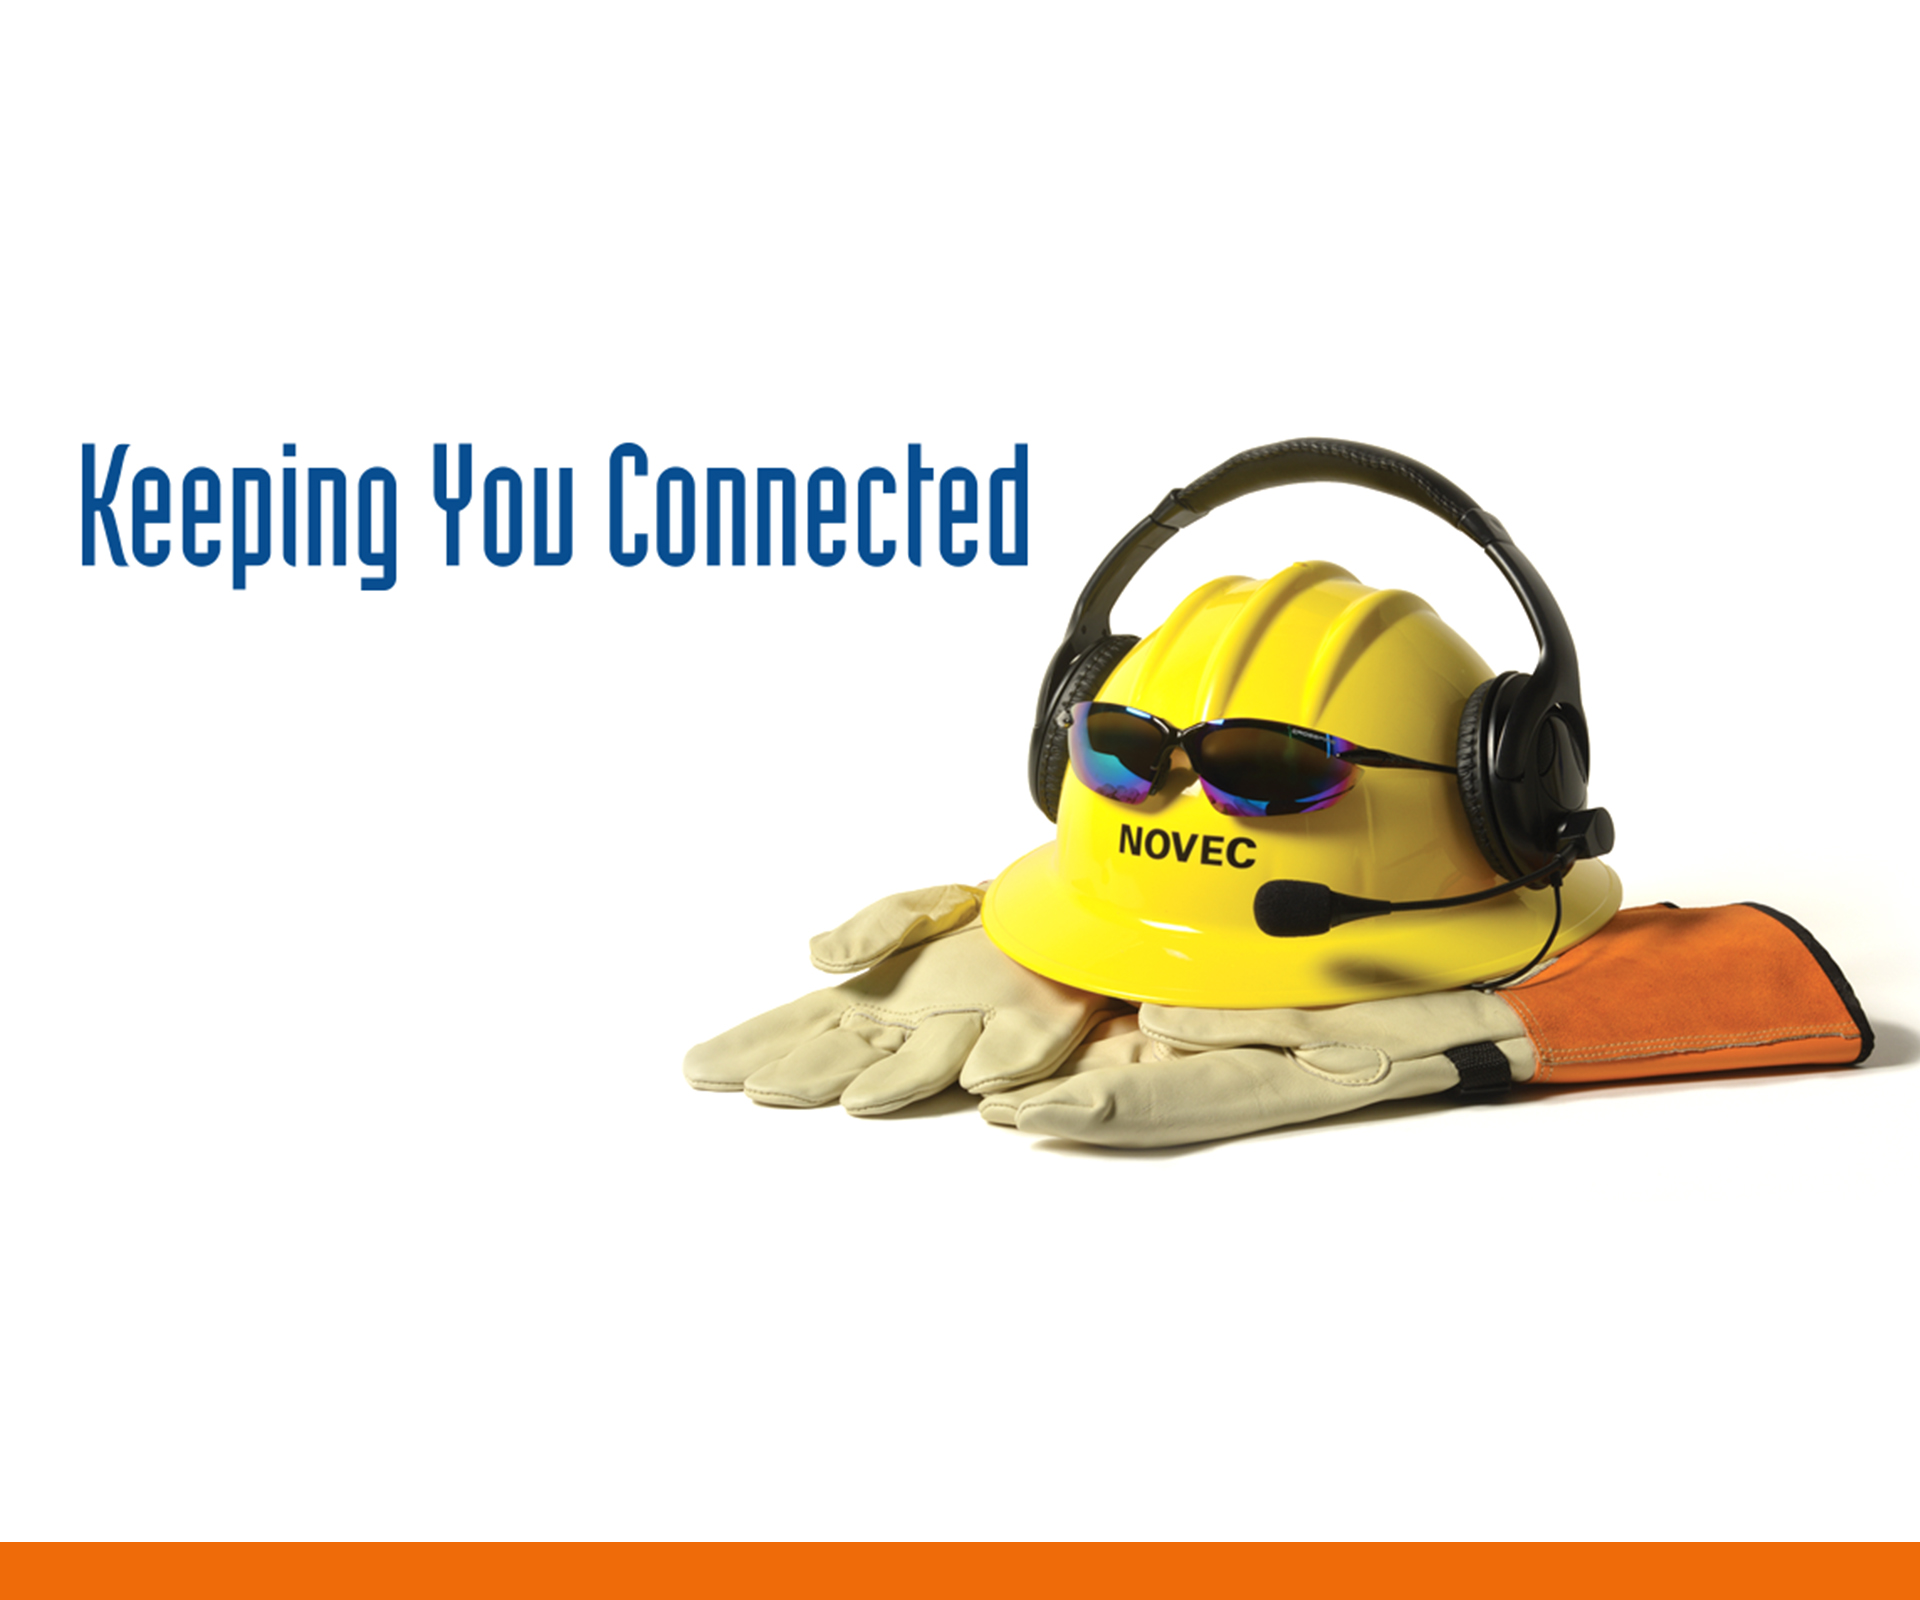 NOVEC – Keeping You Connected campaign